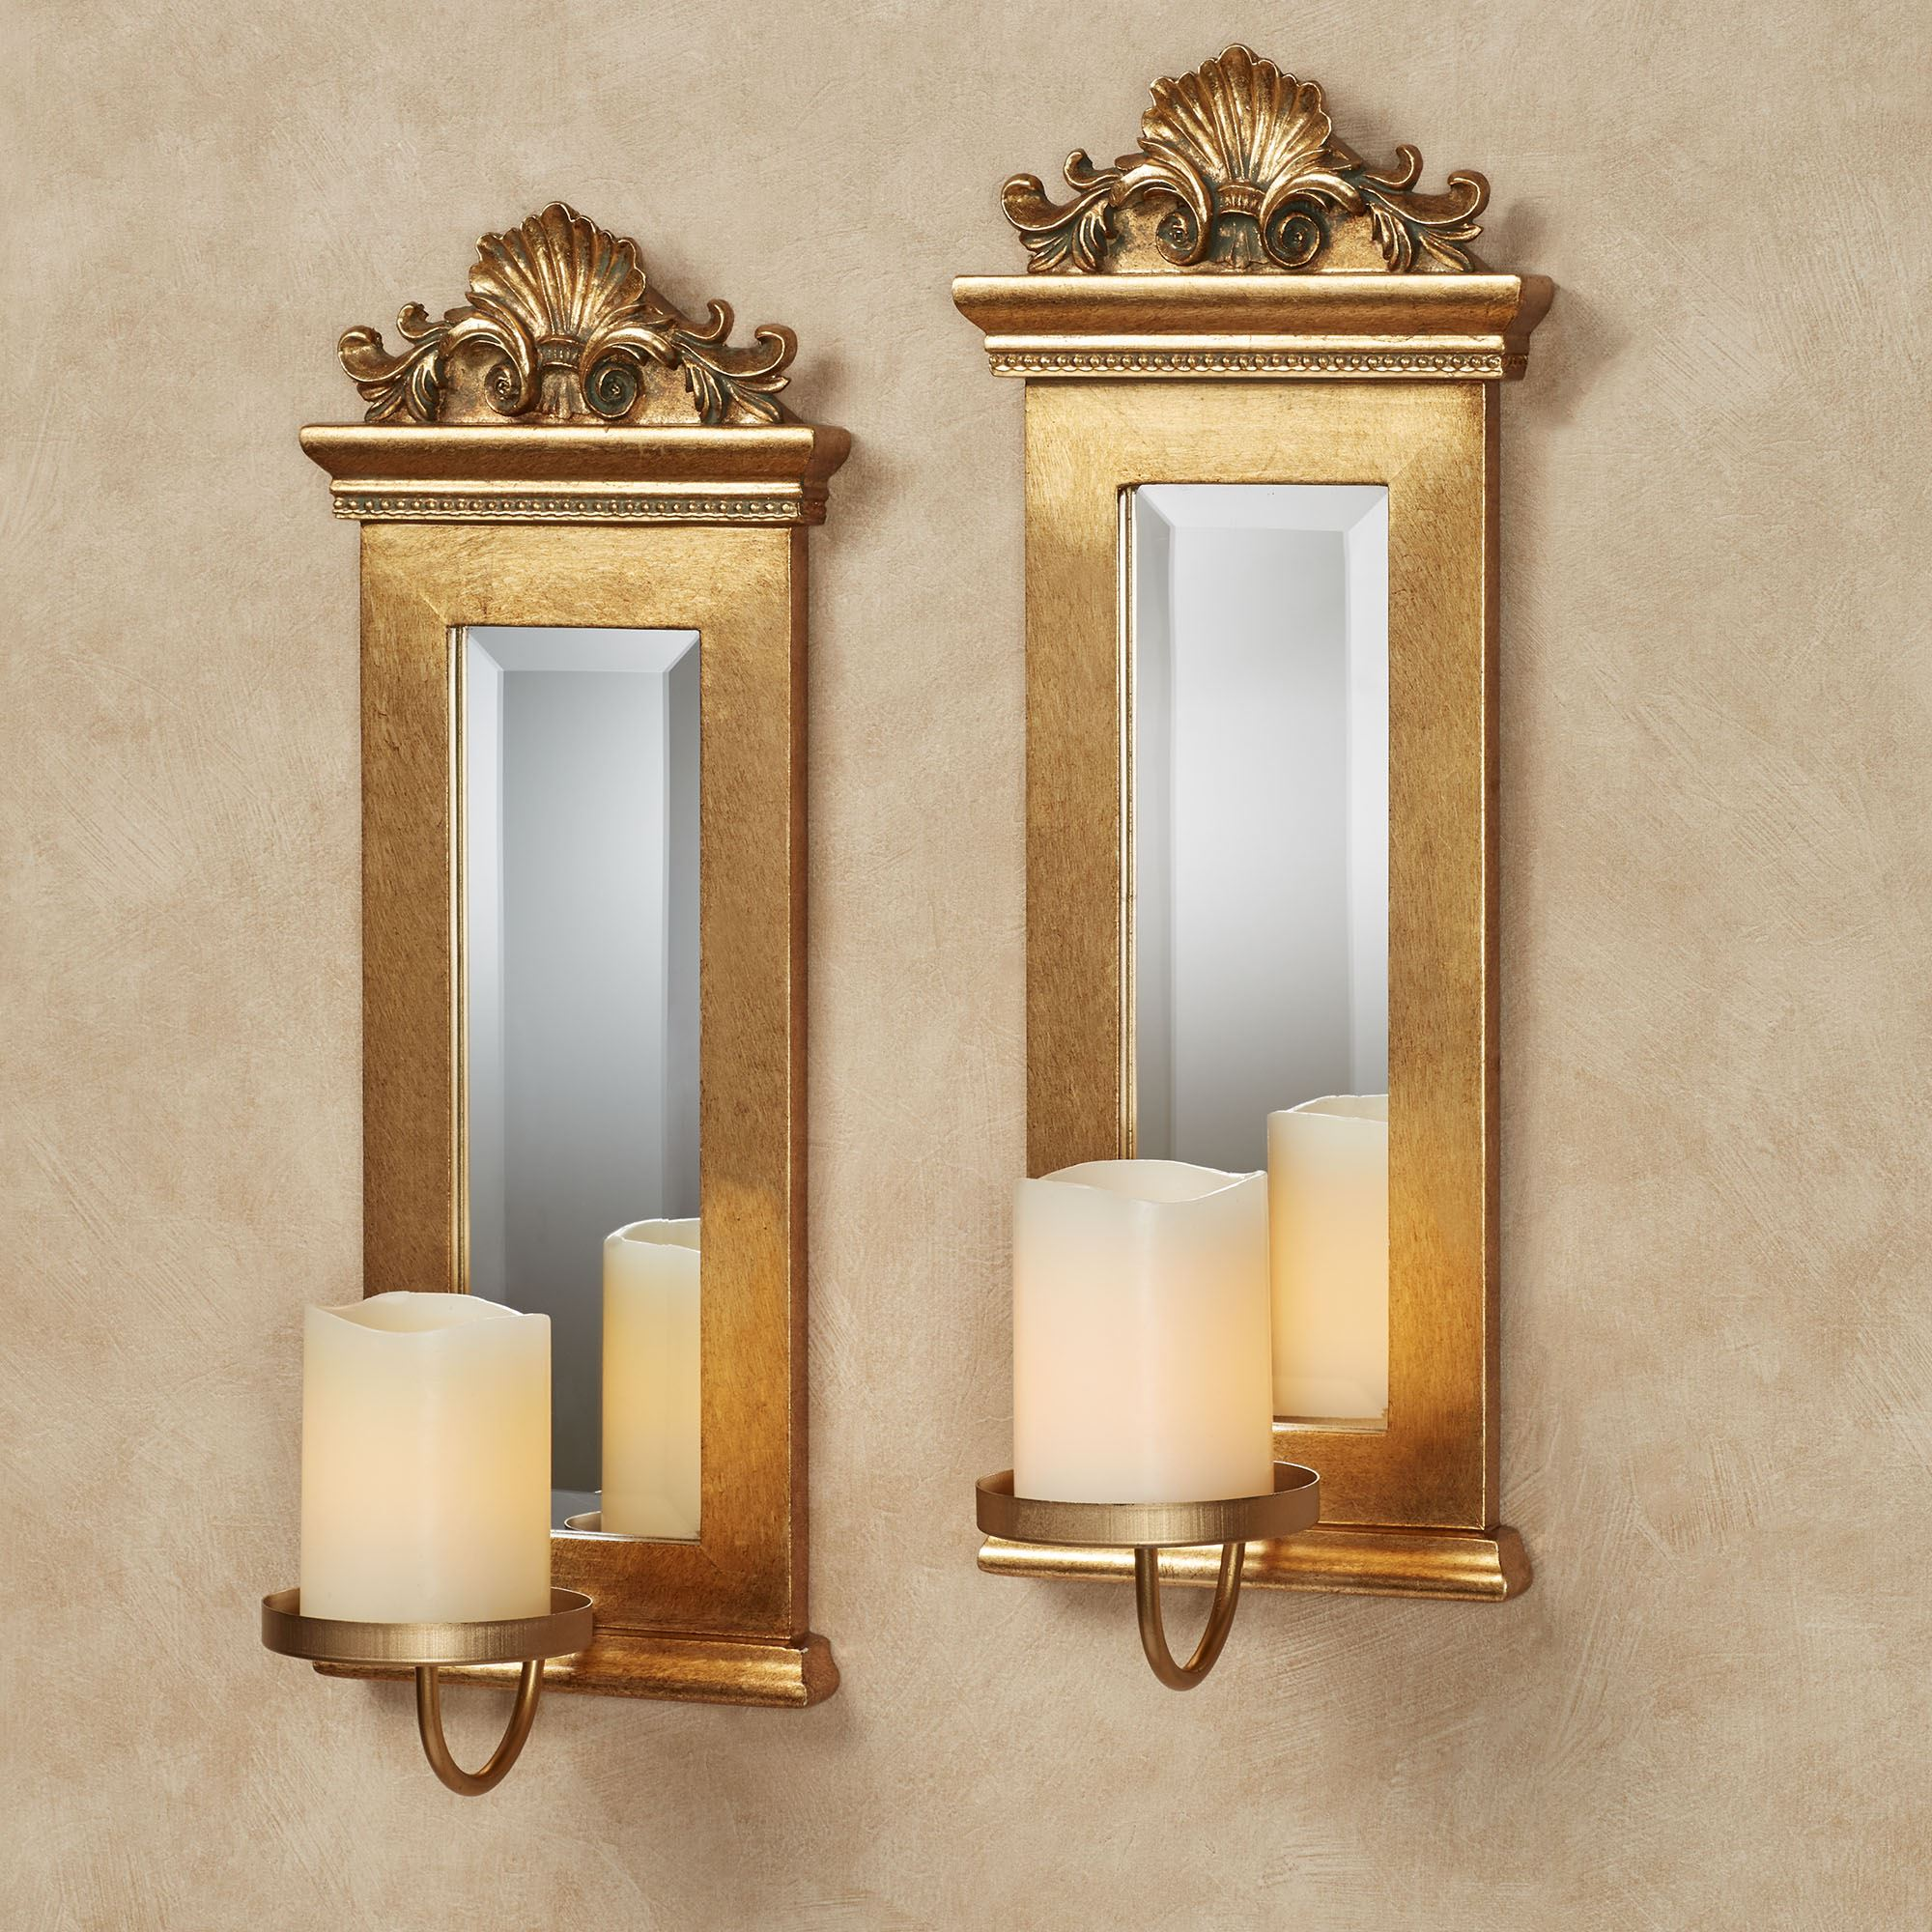 Gold Acanthus Mirrored Wall Sconce Set